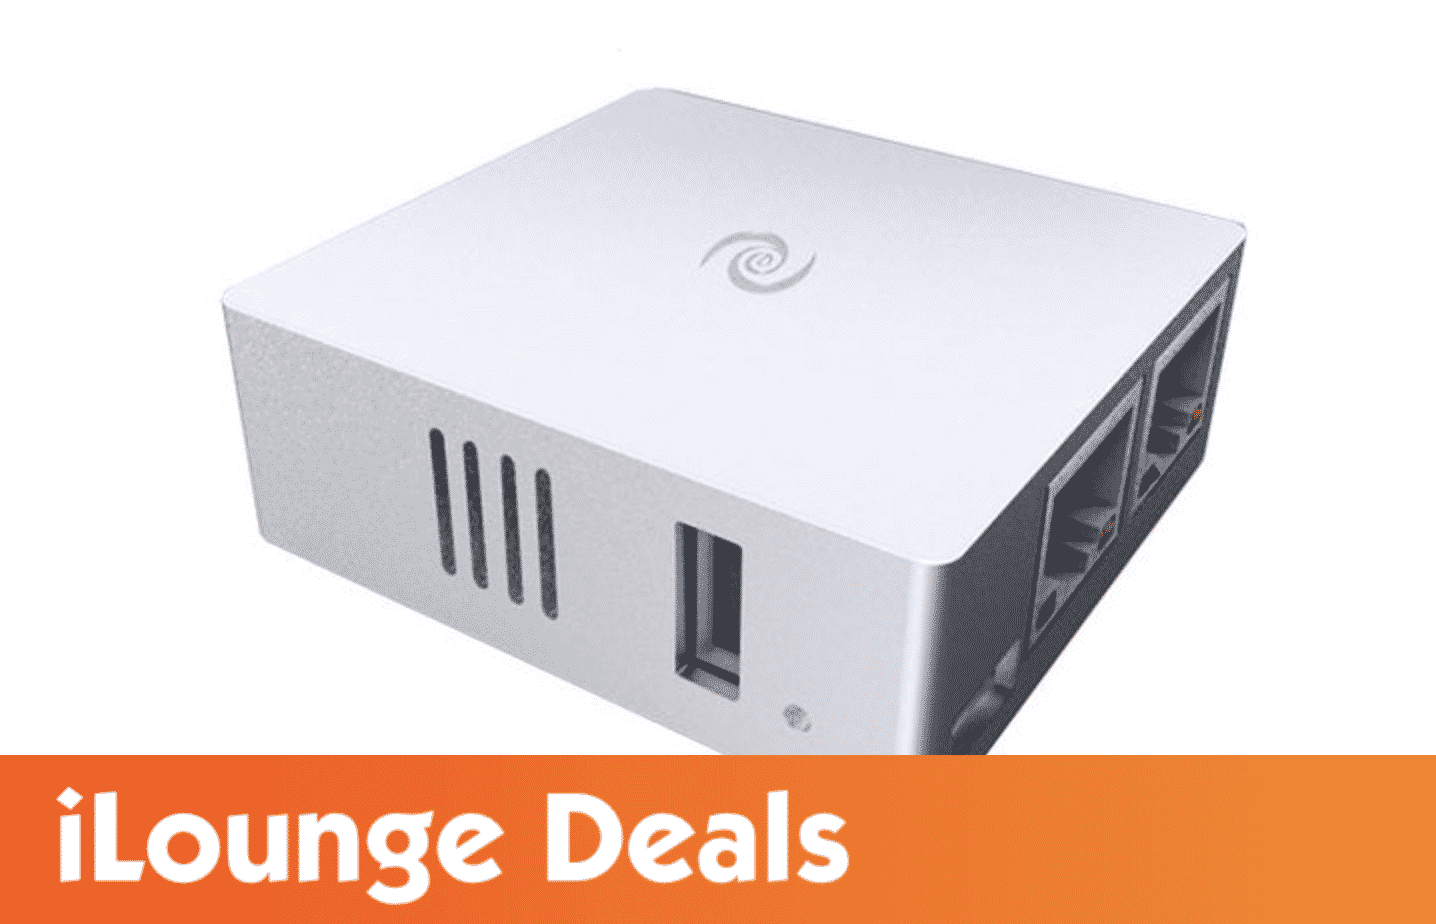 Get the Deeper Connect Nano Decentralized VPN & Firewall Hardware for $299